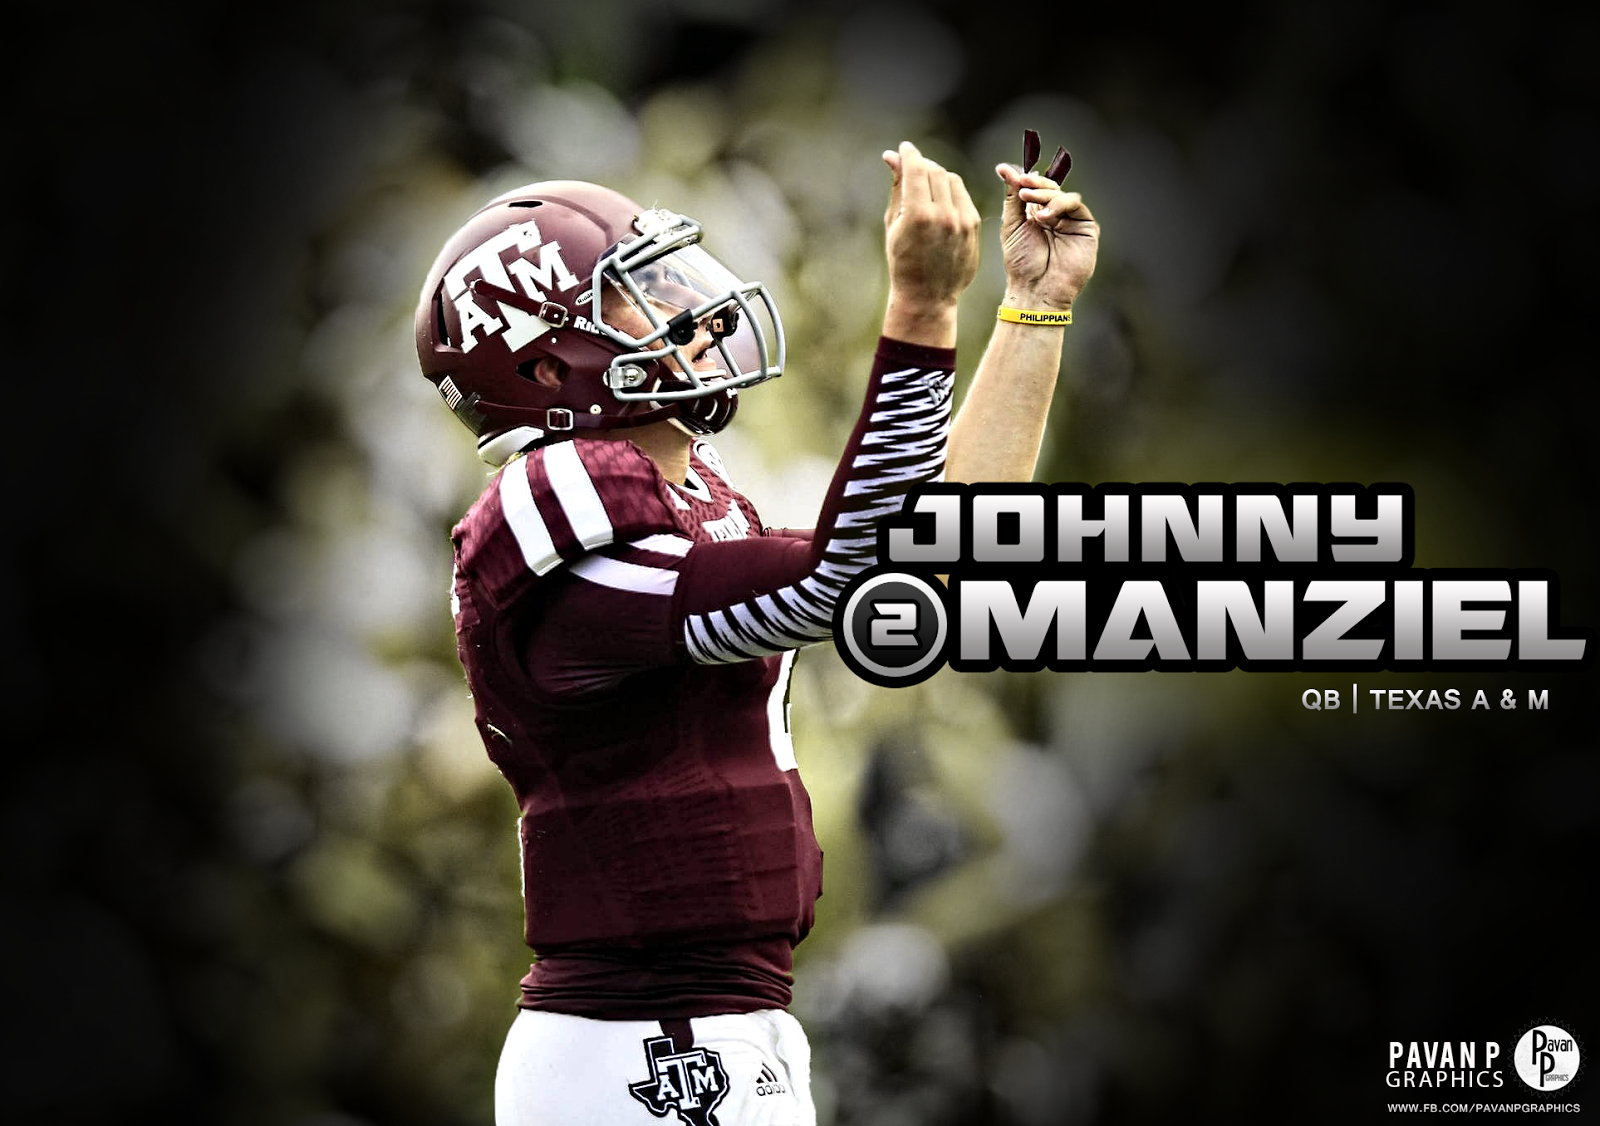 Texas a m background image - Pavan P Graphics Football Wallpapers